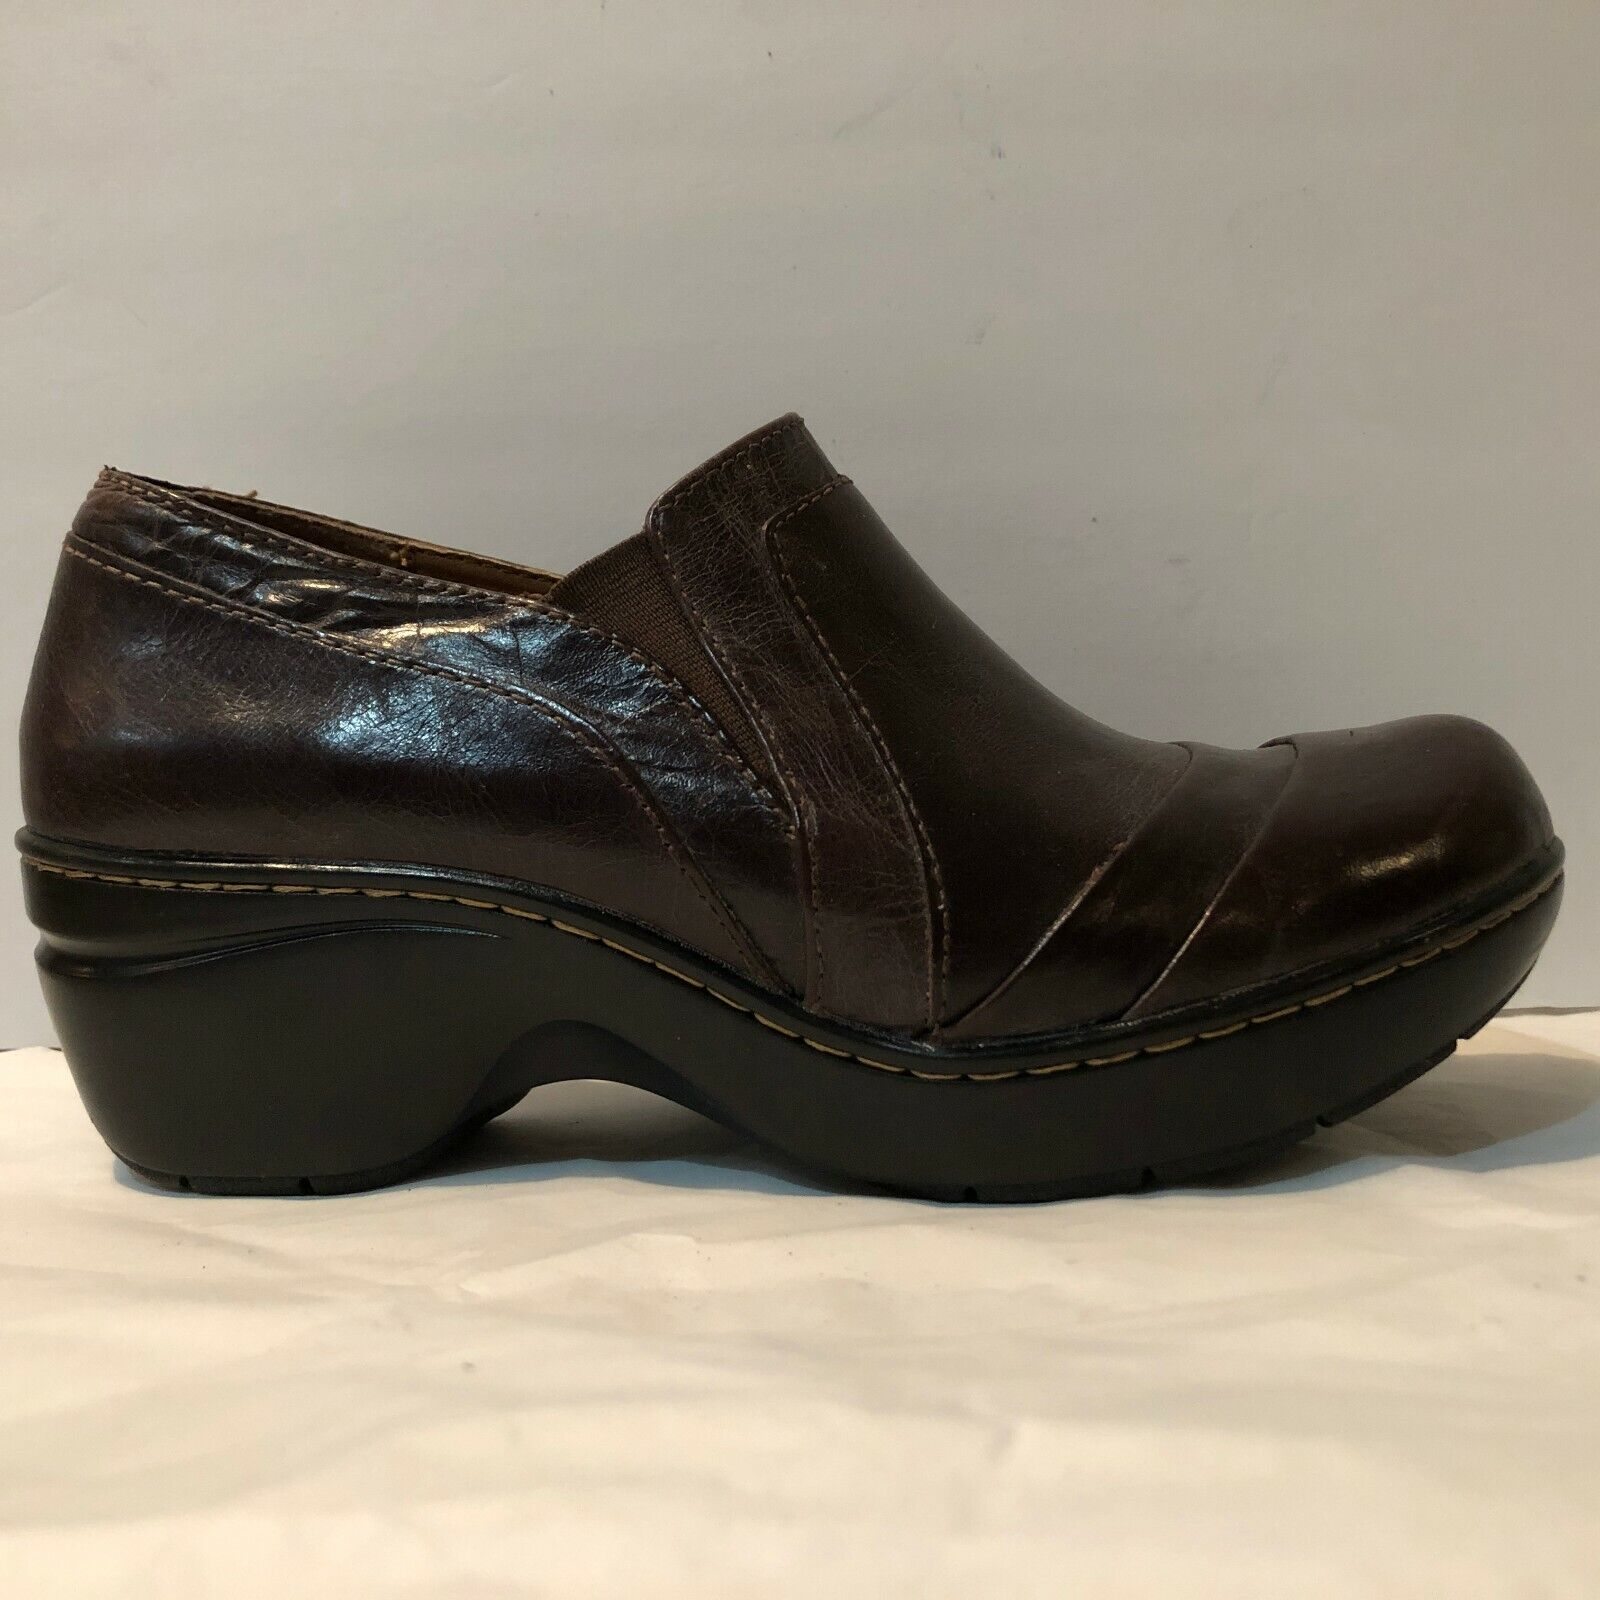 Sofft Brown Leather Comfort Clogs Women's Size 7.5